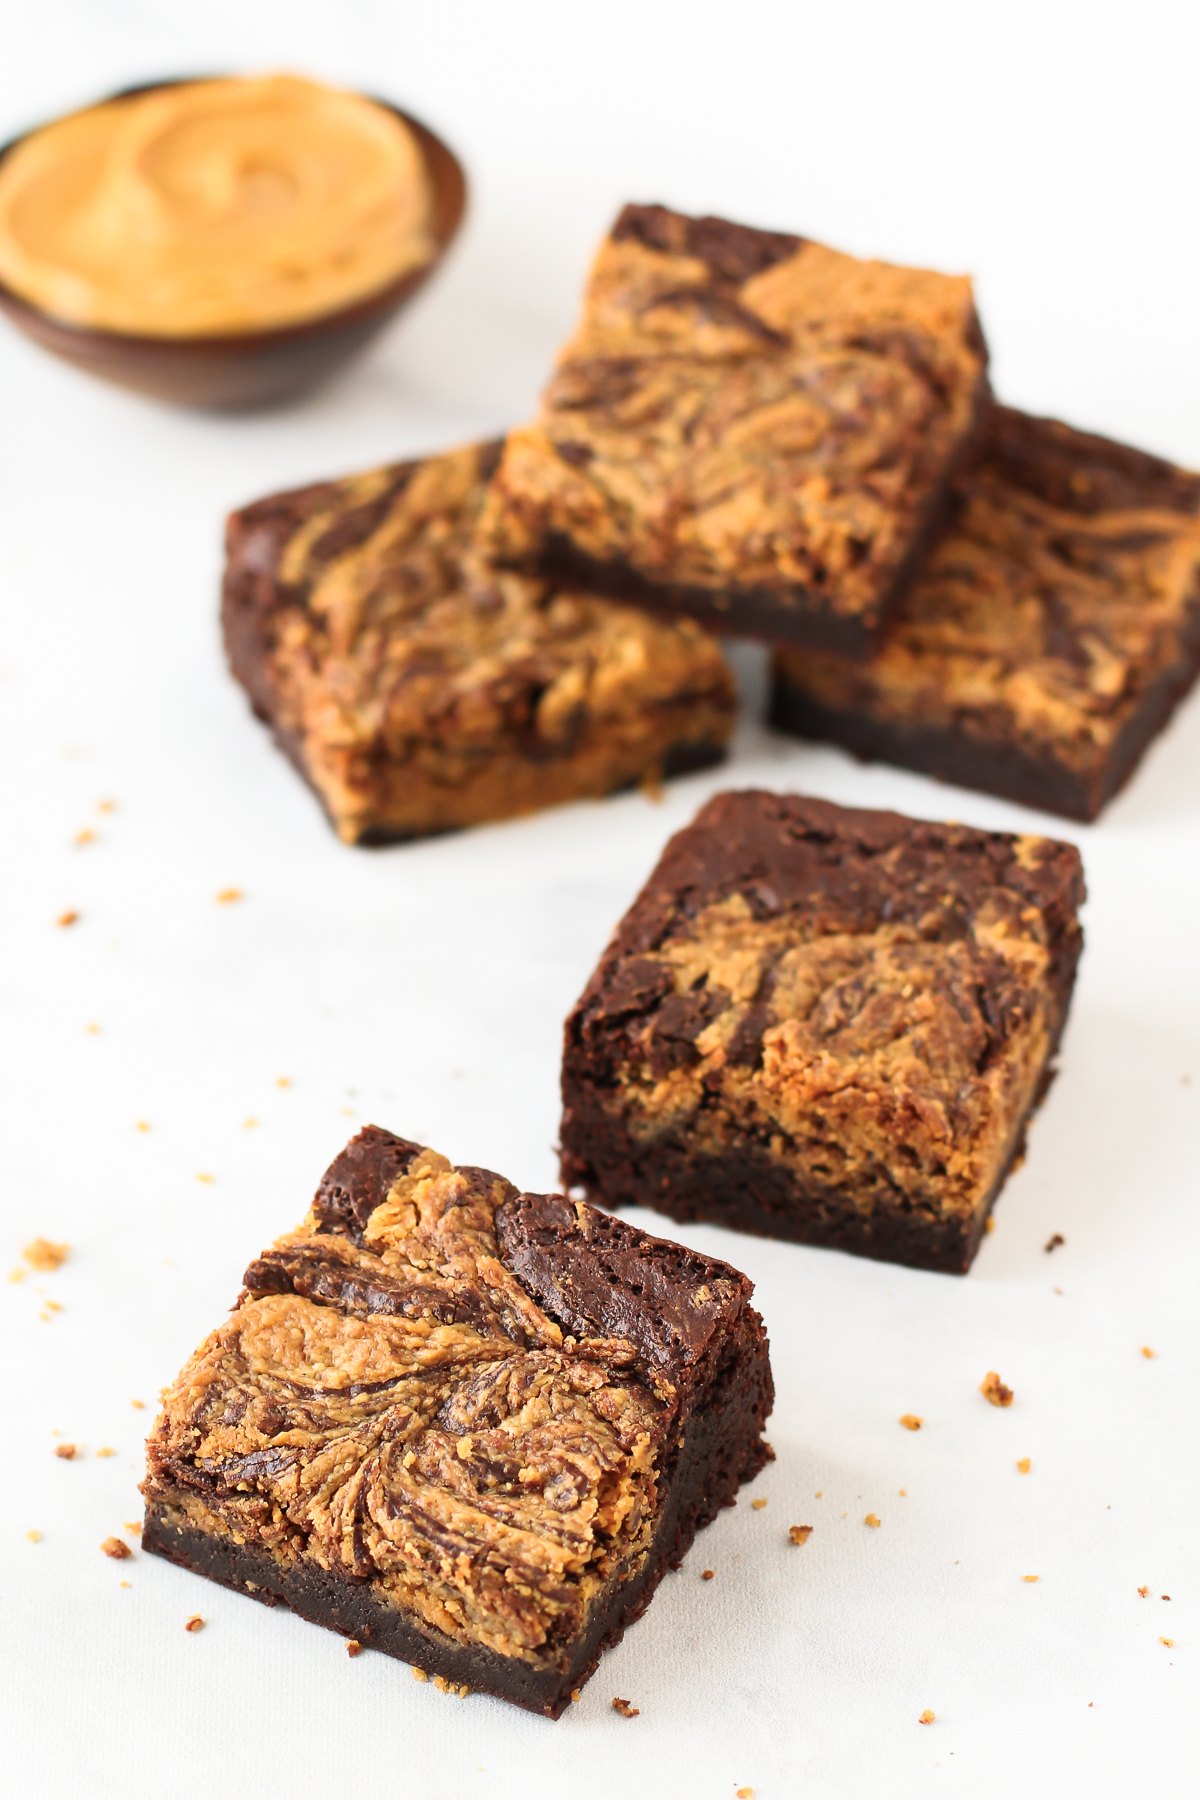 Gluten Free Vegan Peanut Butter Swirl Brownies. Who can resist a chocolate fudge brownie with swirls of creamy peanut butter?